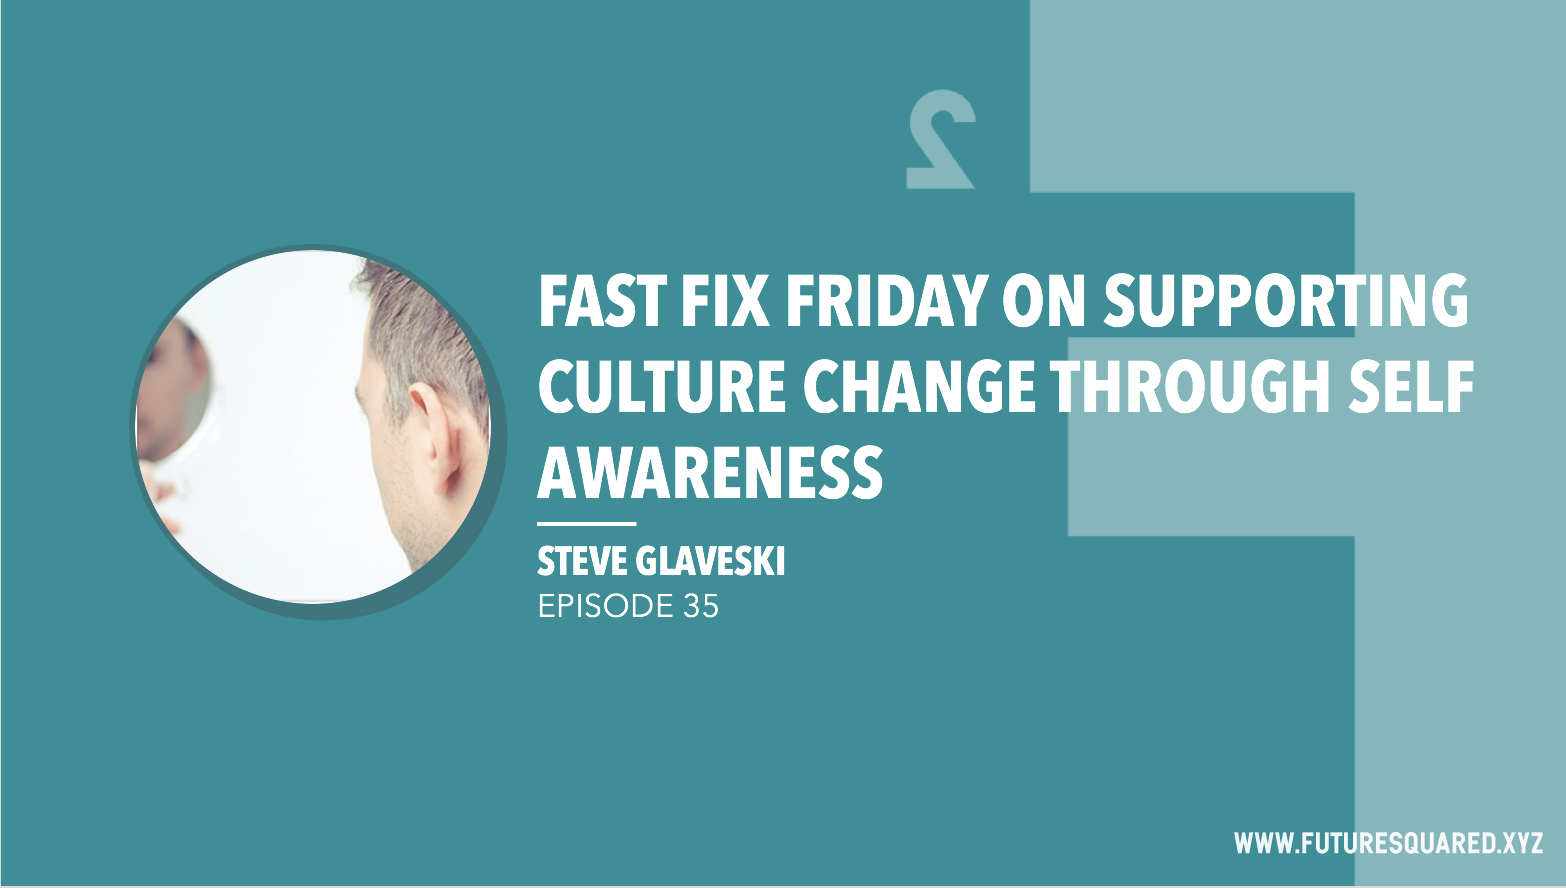 Future Squared Episode #35: Fast Fix Friday on Supporting Culture Change through Self Awareness